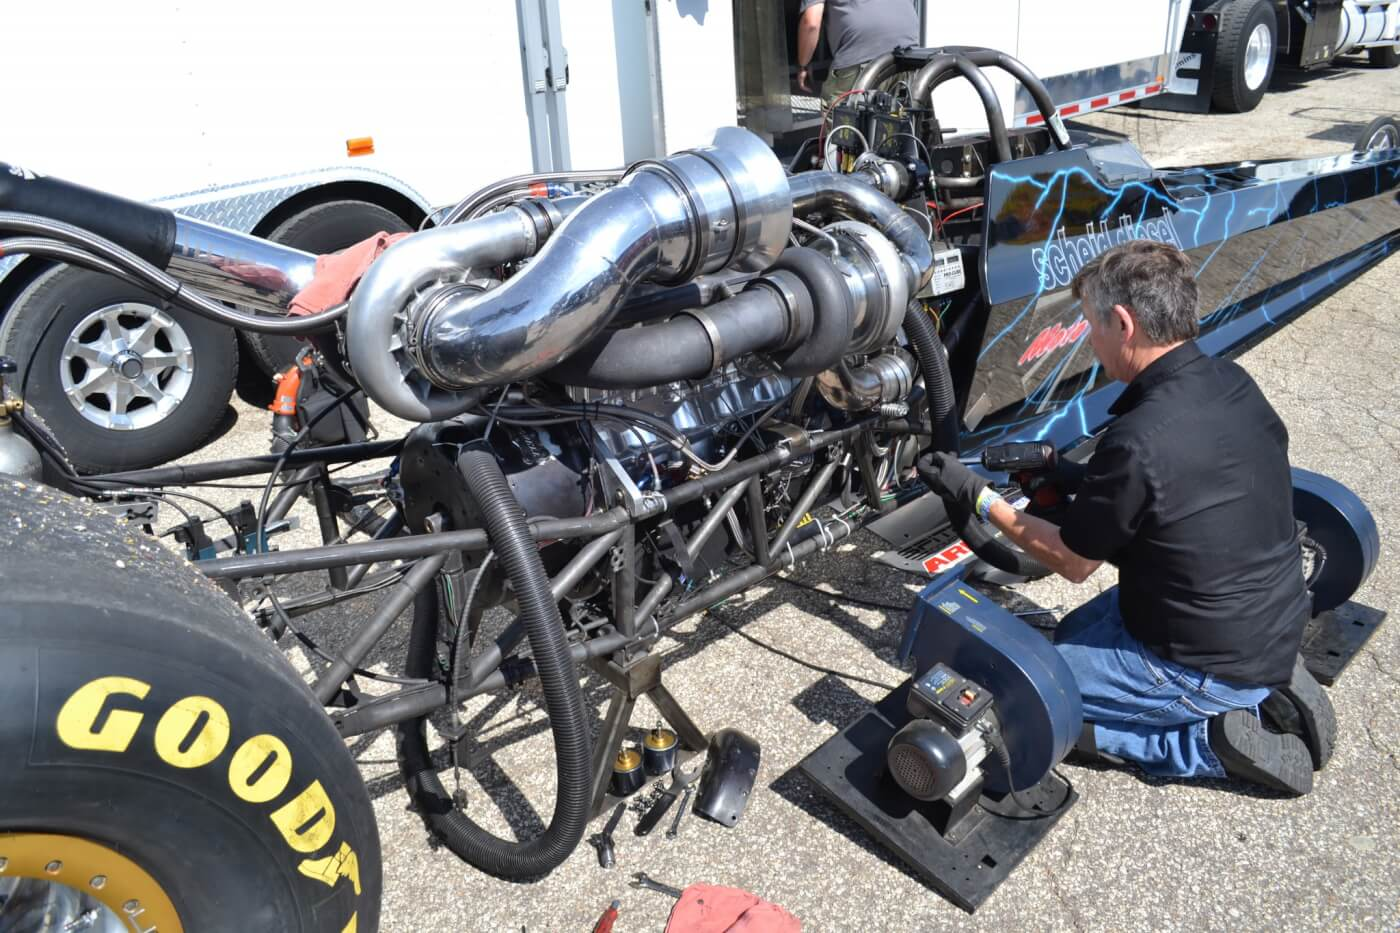 Top Diesel is the NHRDA's quickest and fastest class, and is home to such vehicles as the 6-second Scheid dragster, which unfortunately lost a transmission in qualifying. Not one to go out without a fight, the team swapped in a spare Lenco just in time for eliminations.